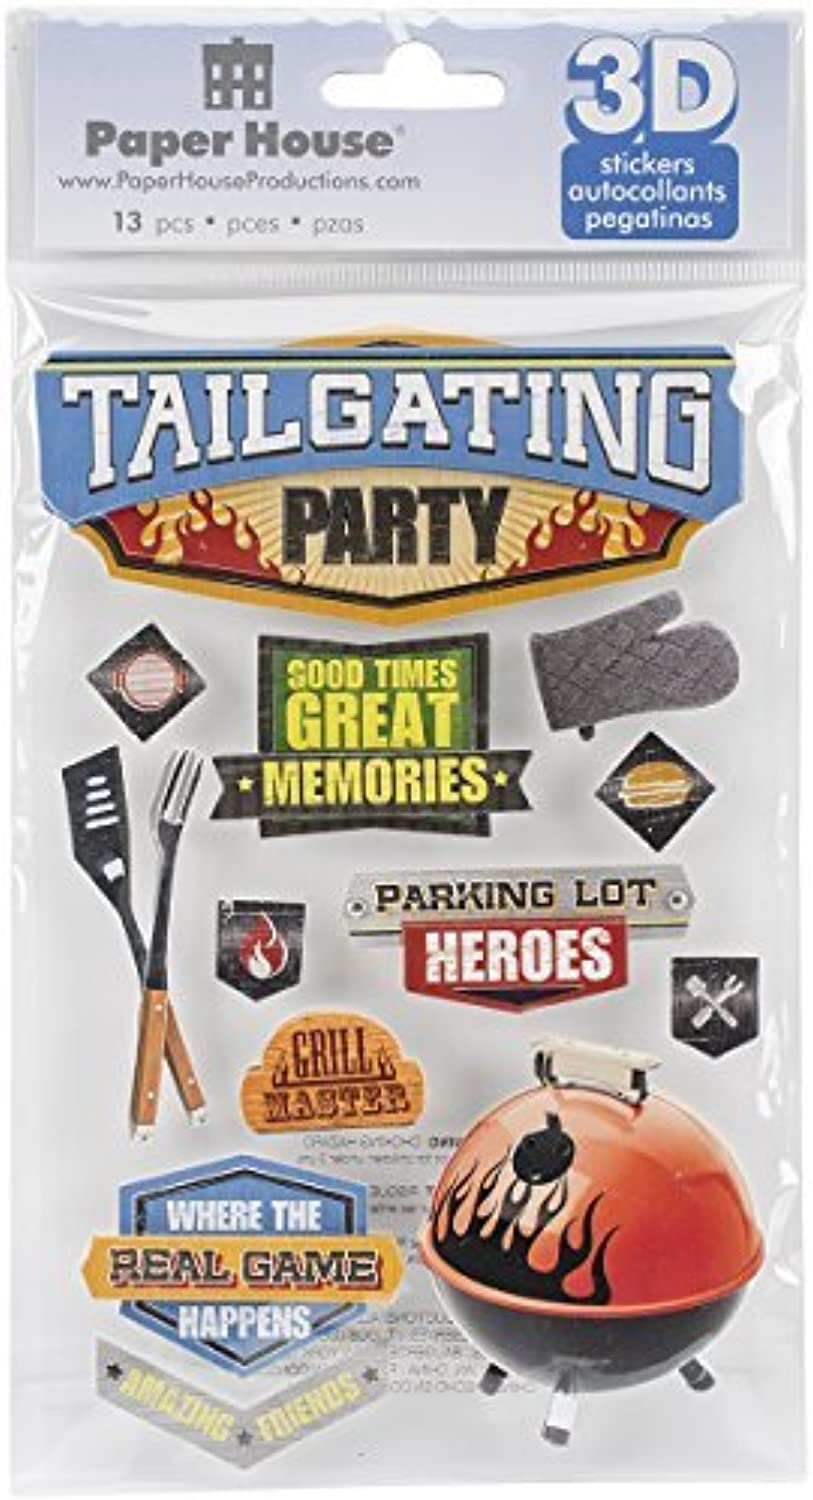 Paper House Productions STDM-0237E Tailgating Party 3D Stickers (3 Pack) by Paper House Productions B01IE8SM54 |